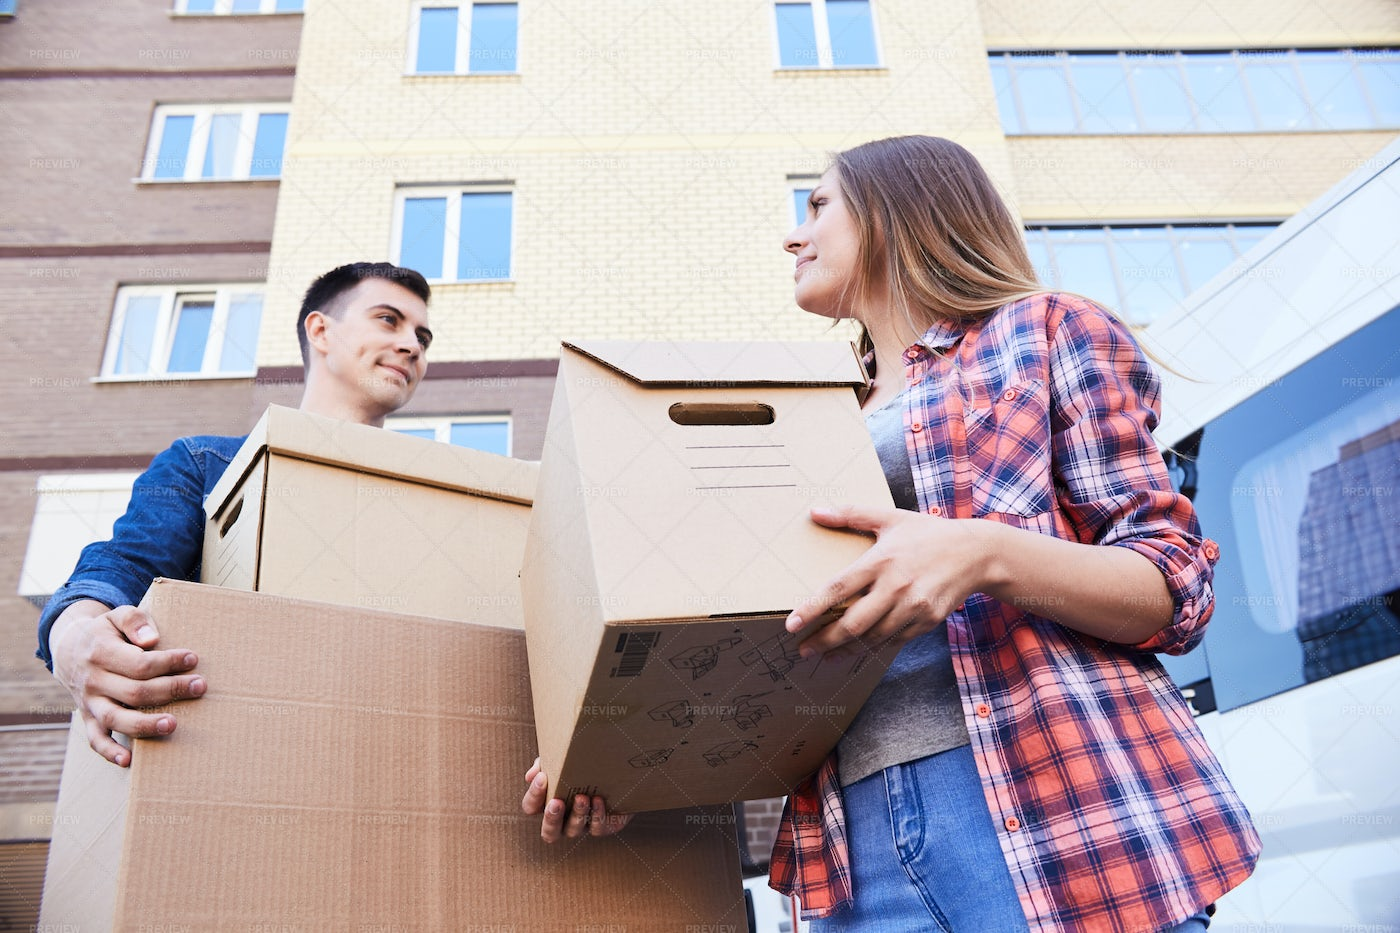 Couple Holding Boxes While Moving: Stock Photos